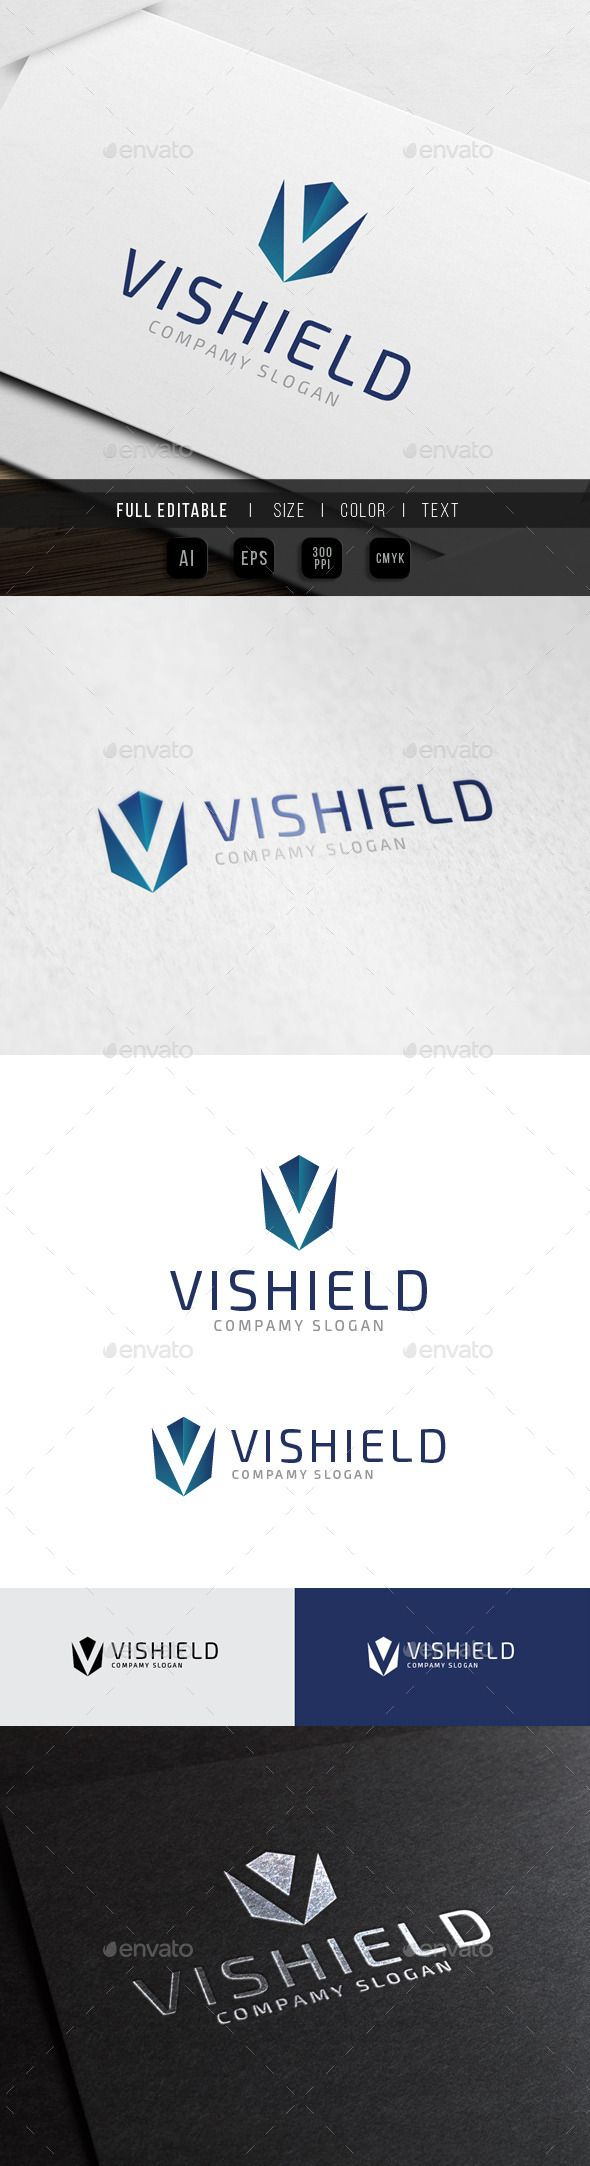 Security letters logo clipart banner library 17 Best ideas about Security Logo on Pinterest   Lion logo, Shield ... banner library